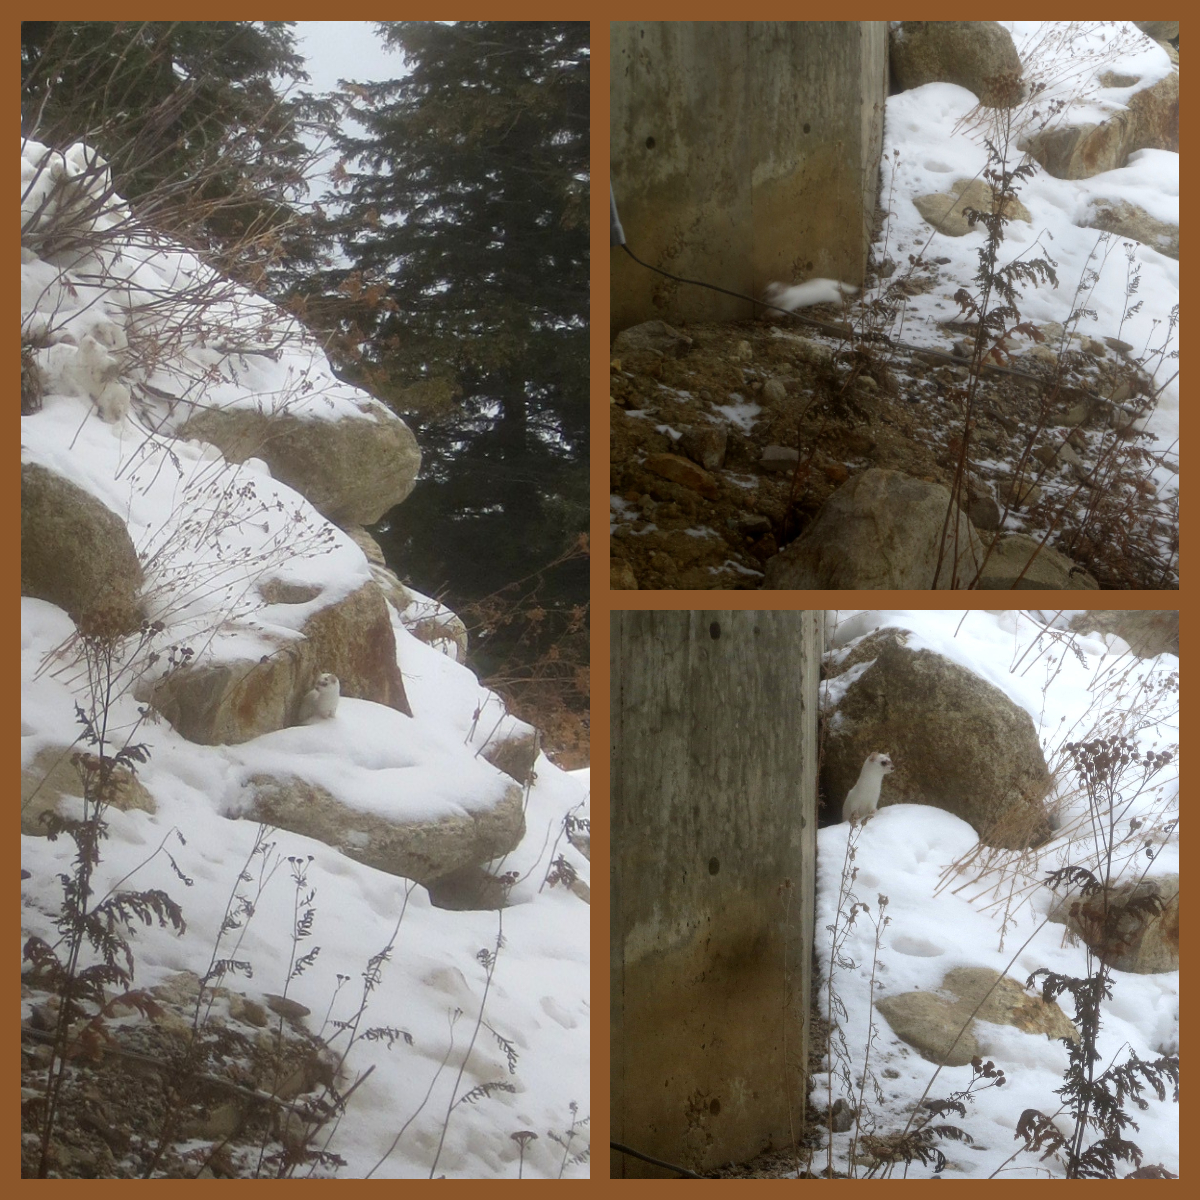 collage of three photos with an ermine near snow-covered rocks